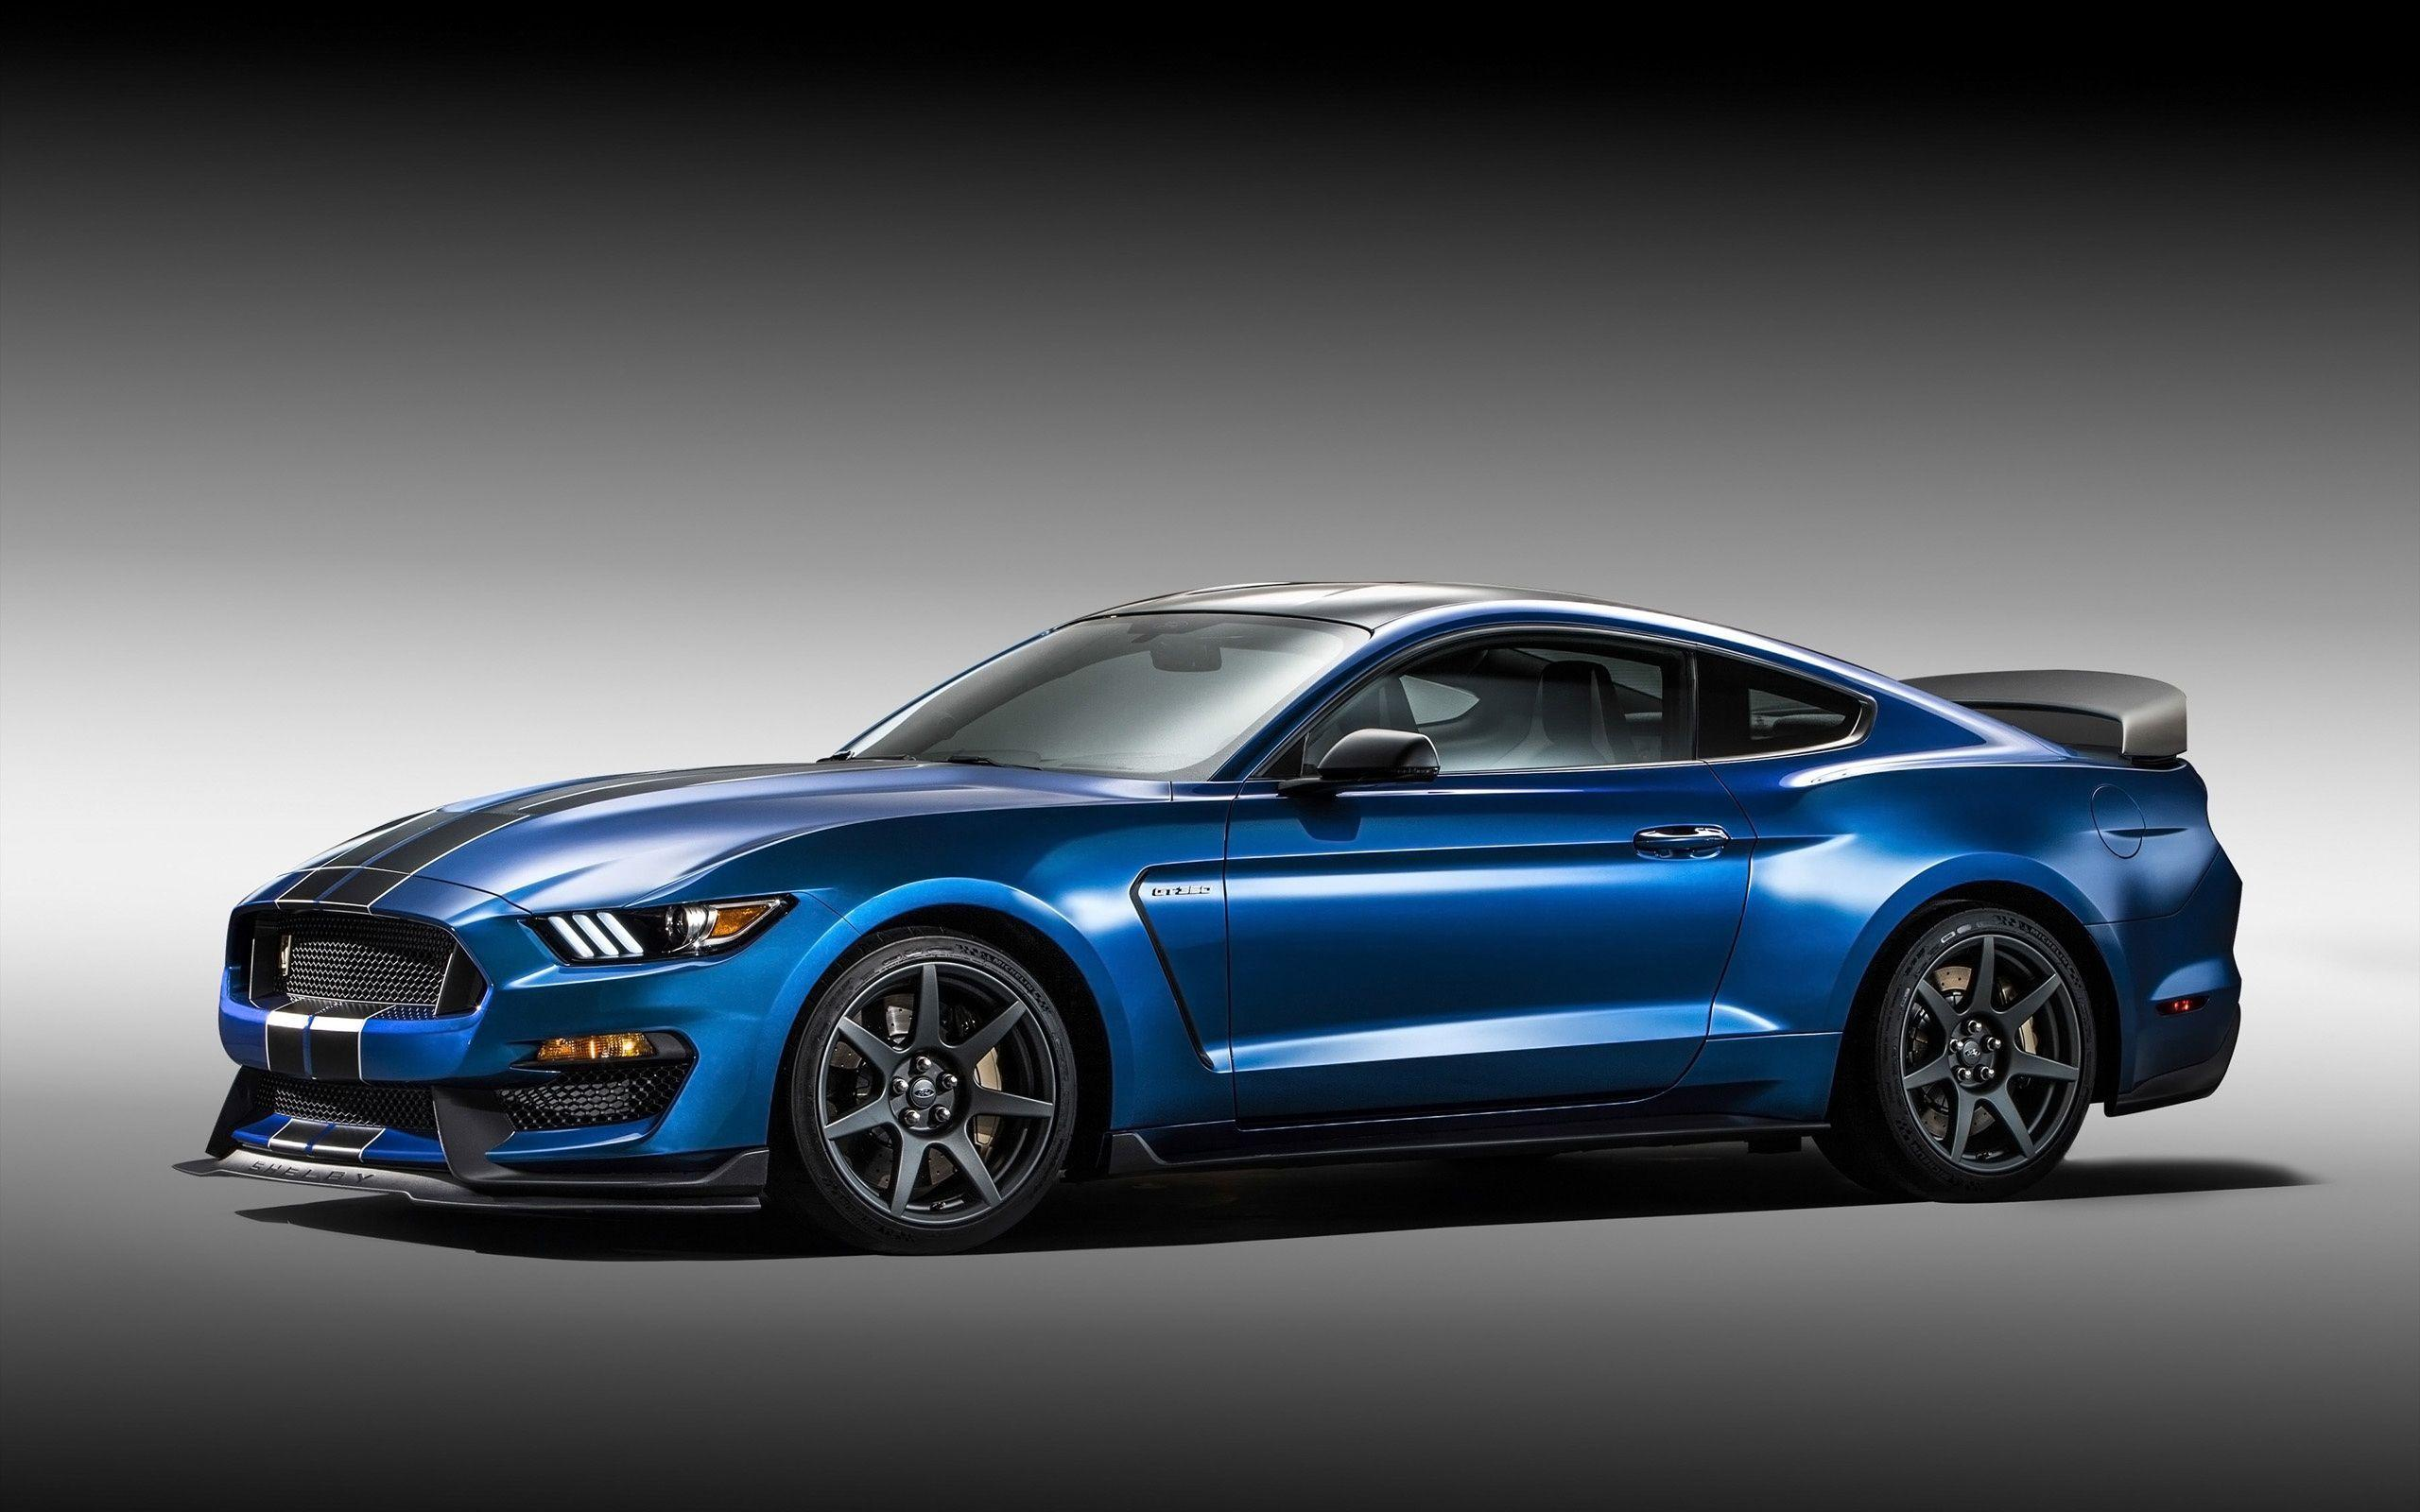 2016 ford shelby gt350r mustang wallpaper hd car wallpapers